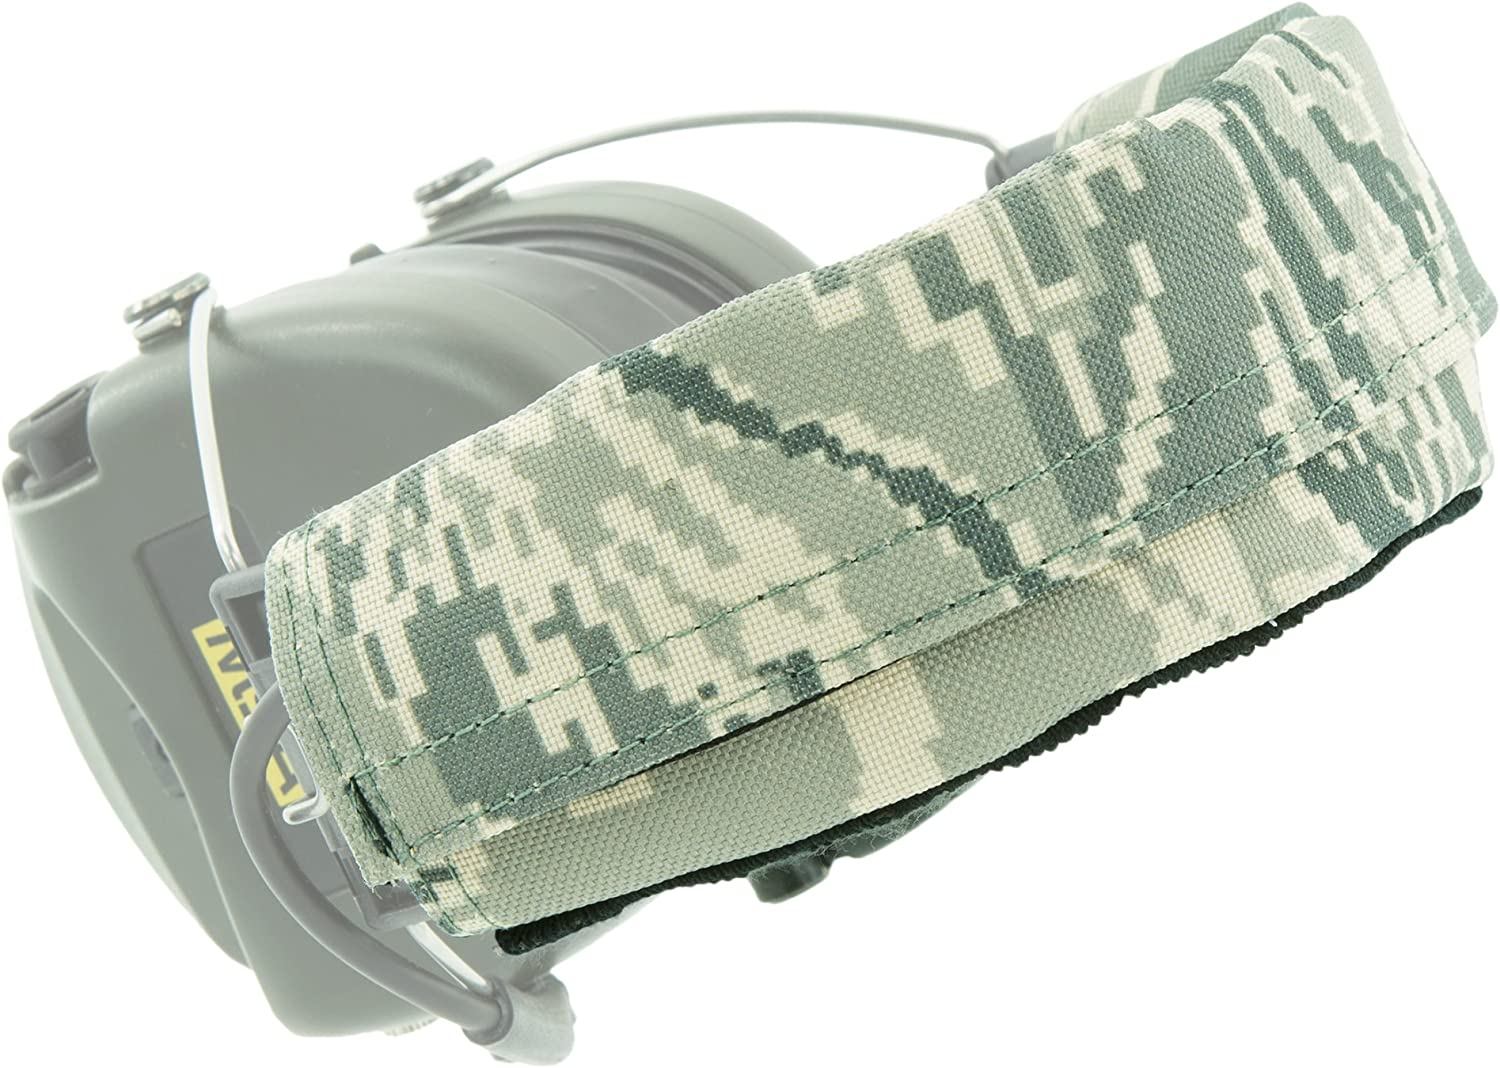 ACE Accessories Tactical Headband Cover for MSA Sordin Different Camo Patterns